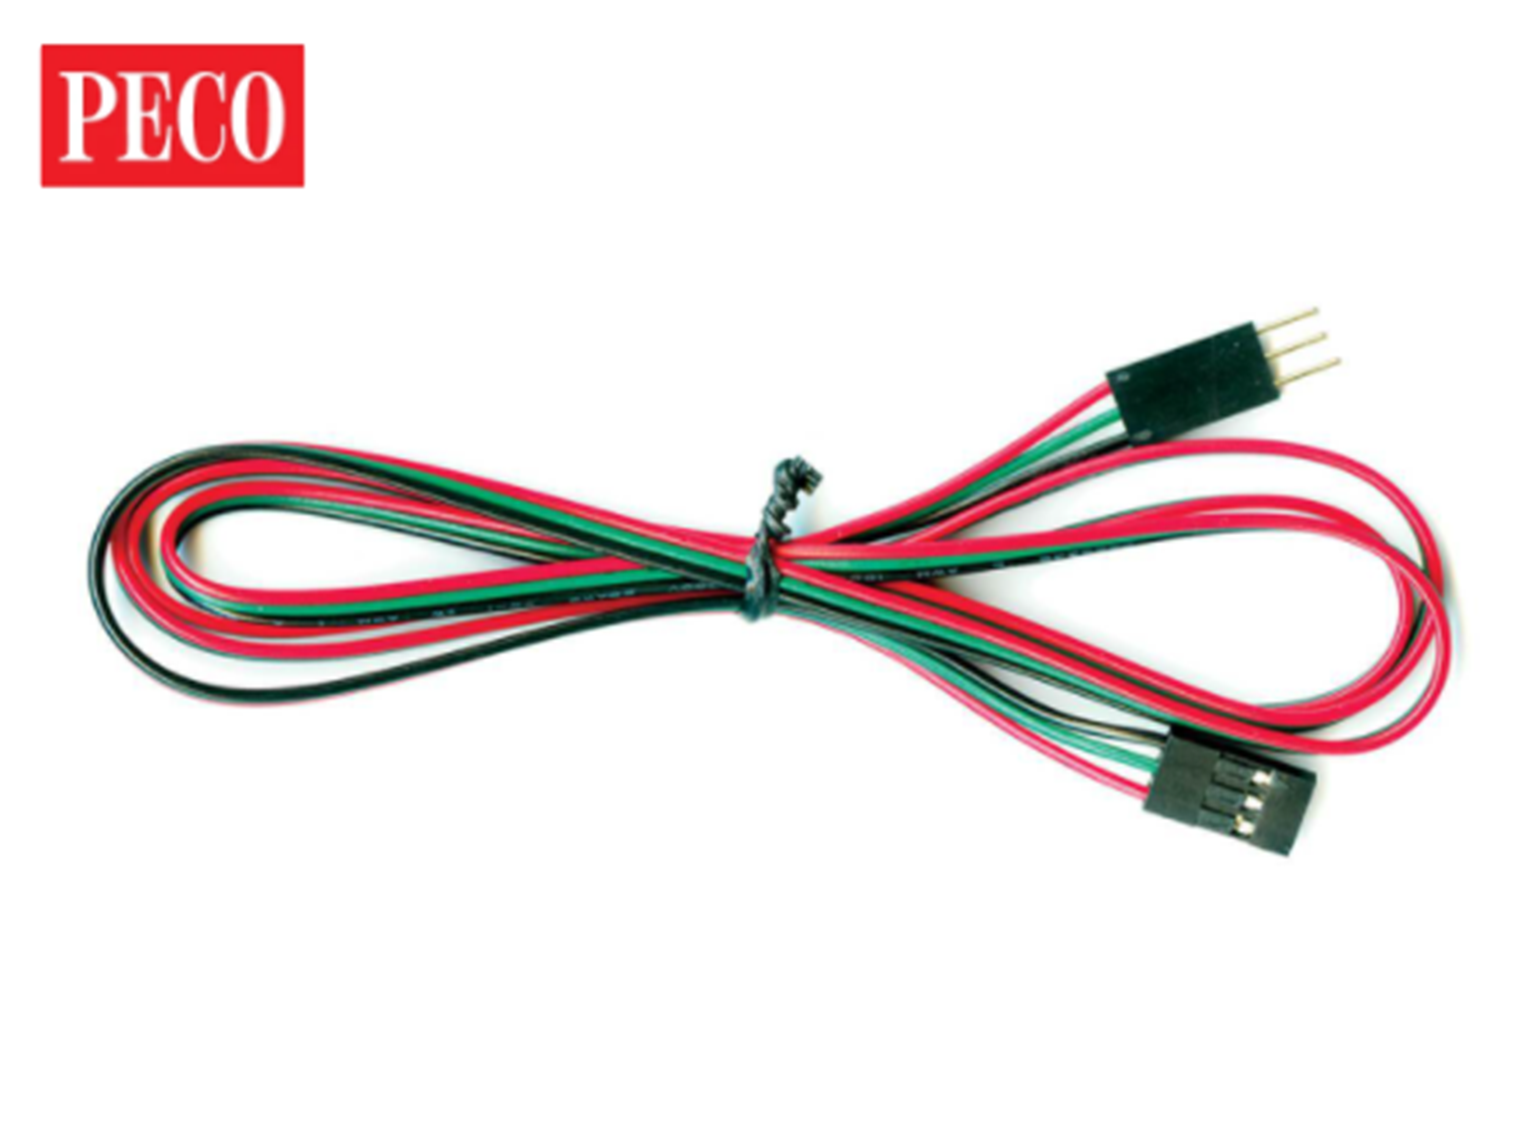 'SmartSwitch' 1M Cable Extension